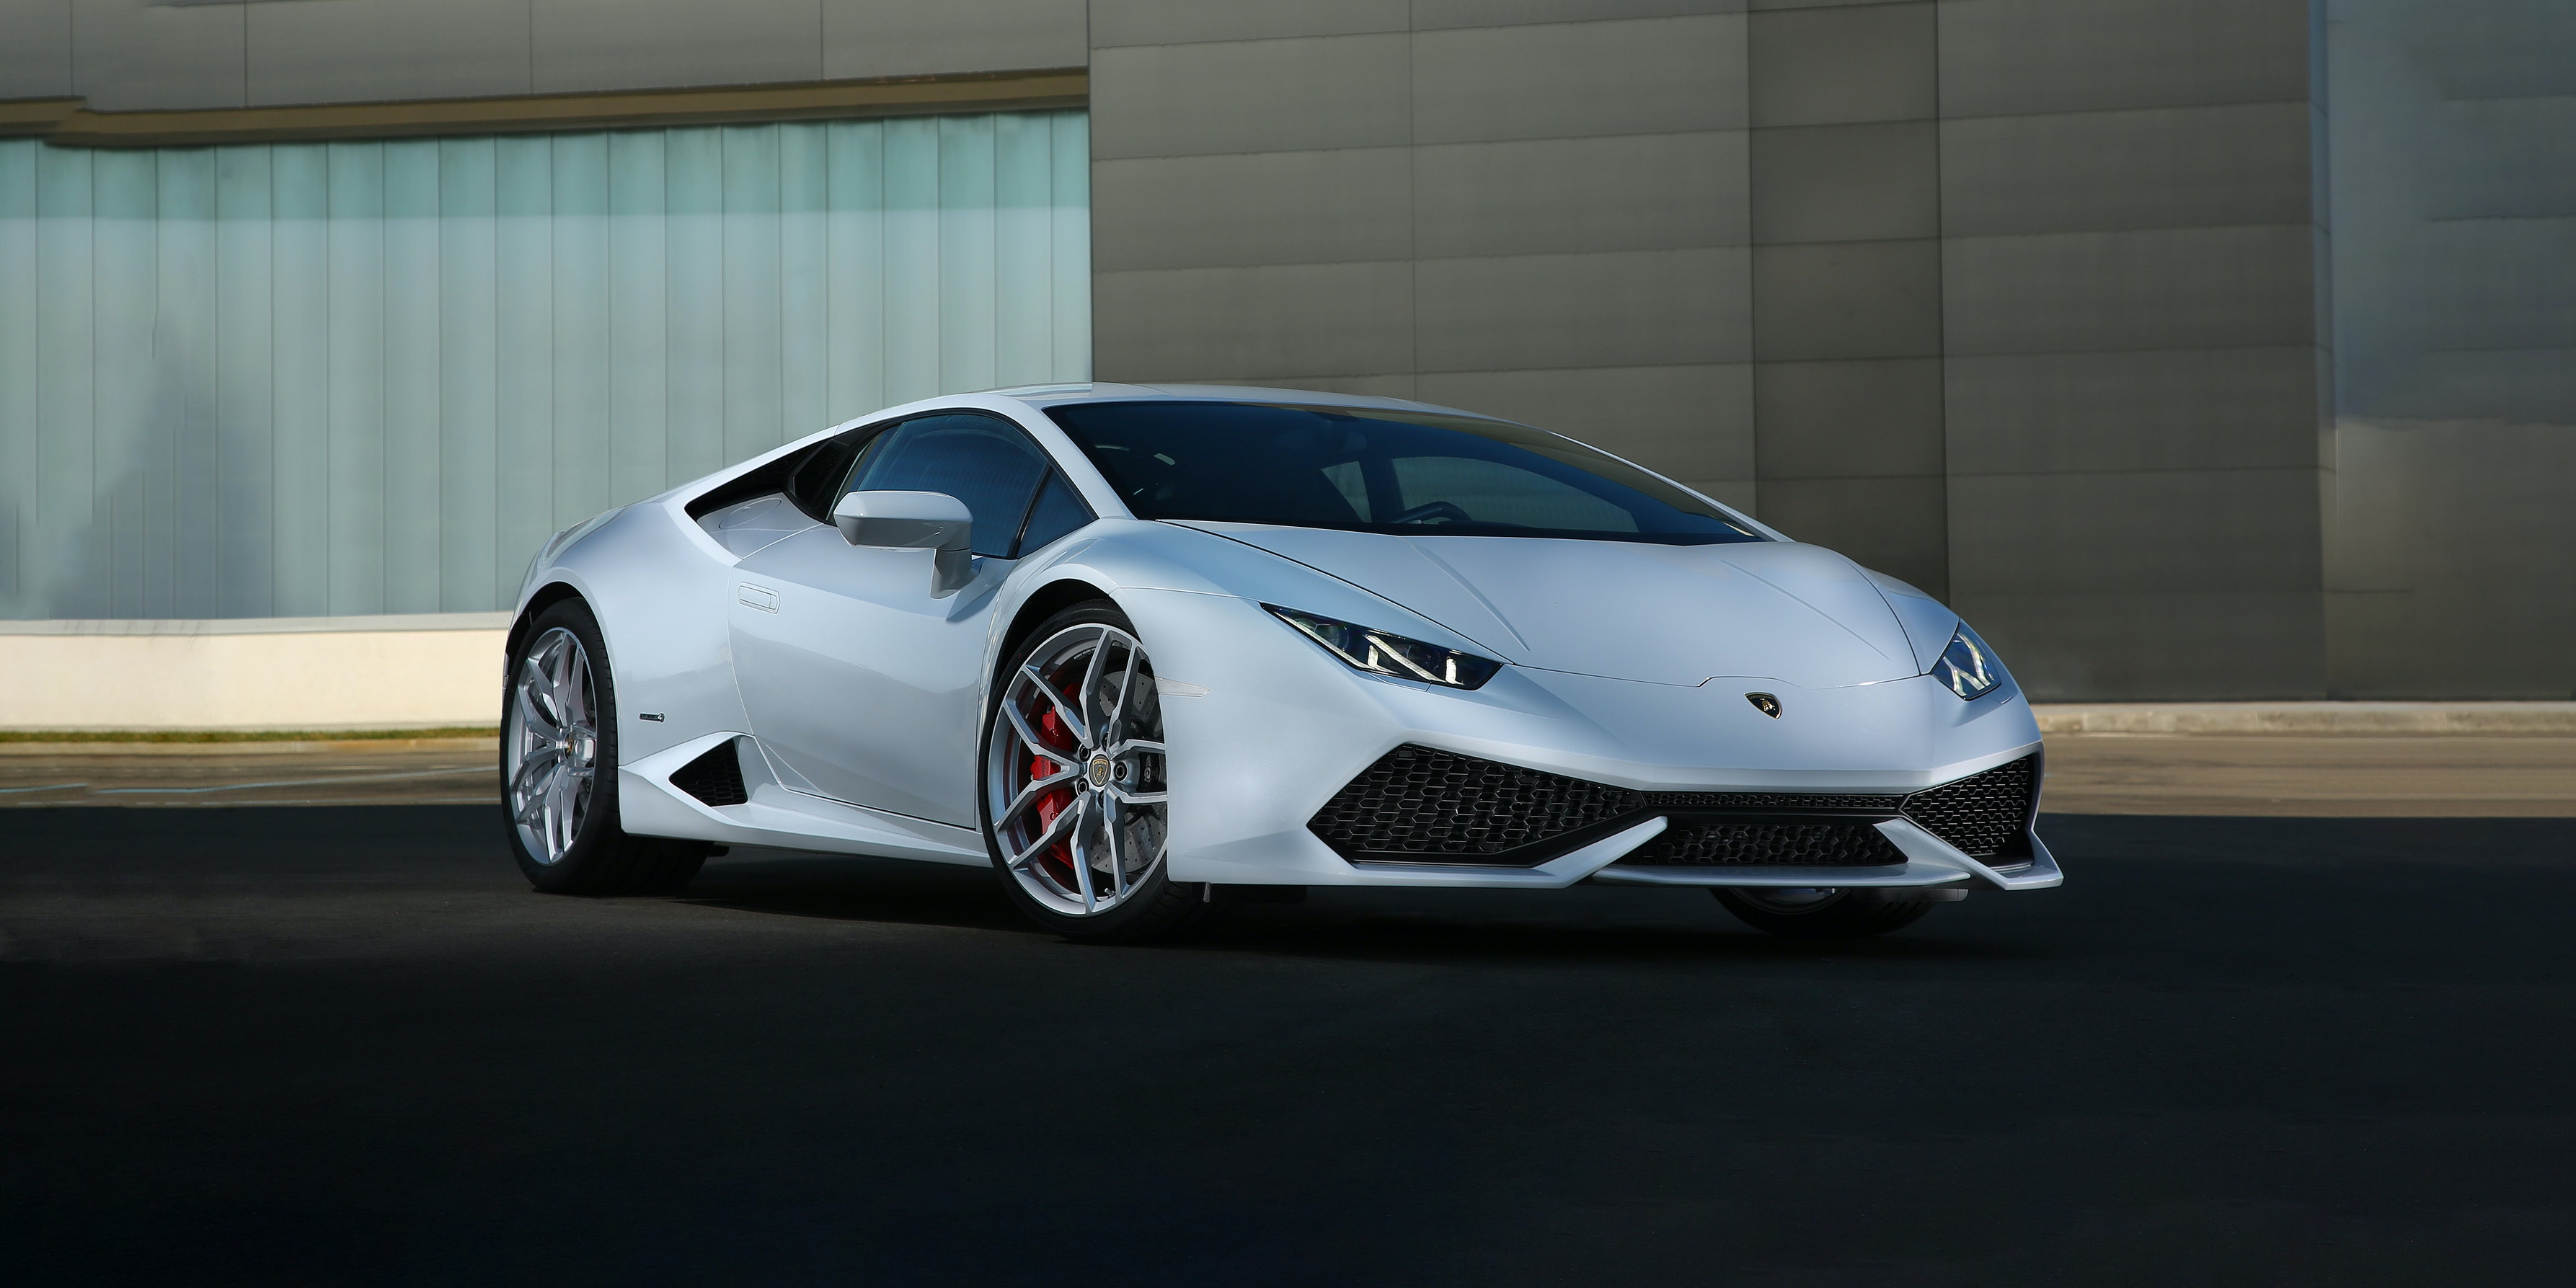 New Lamborghini Cars | Reviews Of Lamborghini Models | Carwow